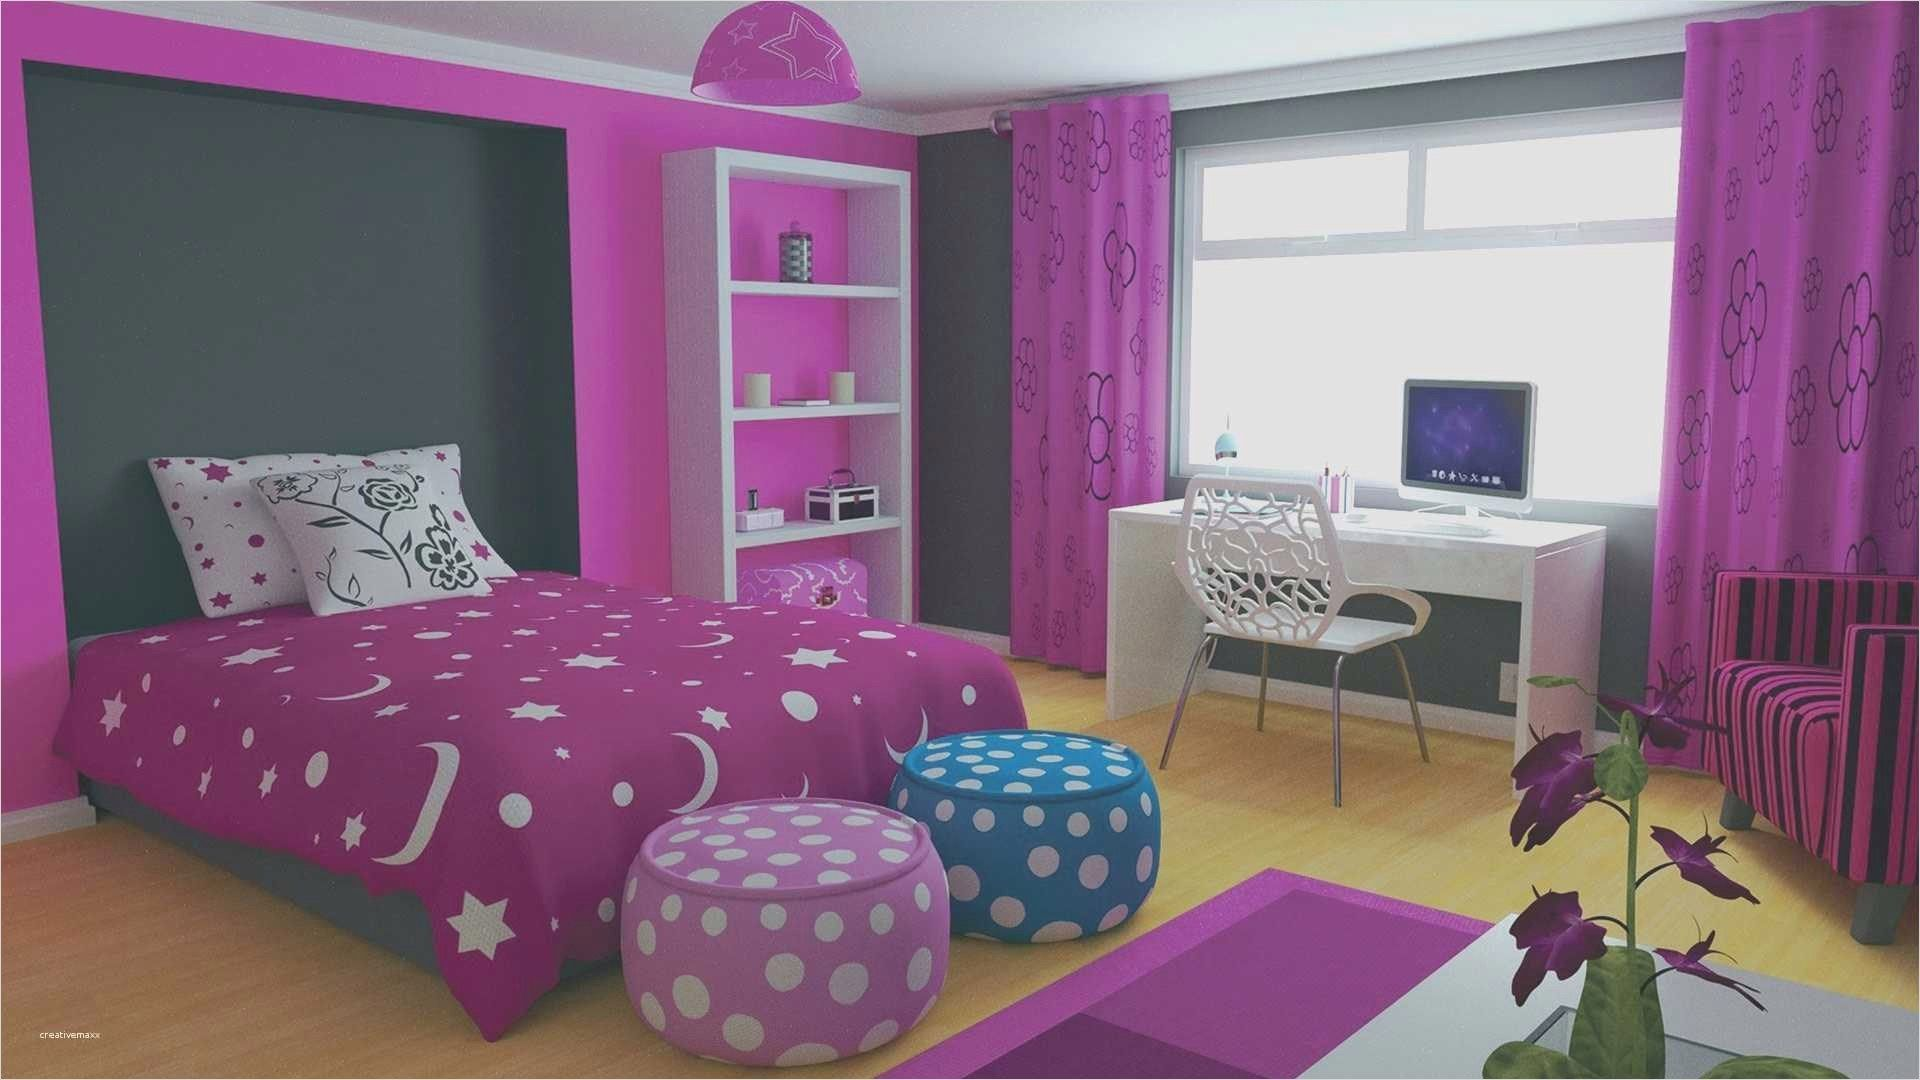 42 Stylish Bedrooms For Teenage Girls That Will Amaze You Decorewarding Purple Bedrooms Girls Room Design Girl Bedroom Decor